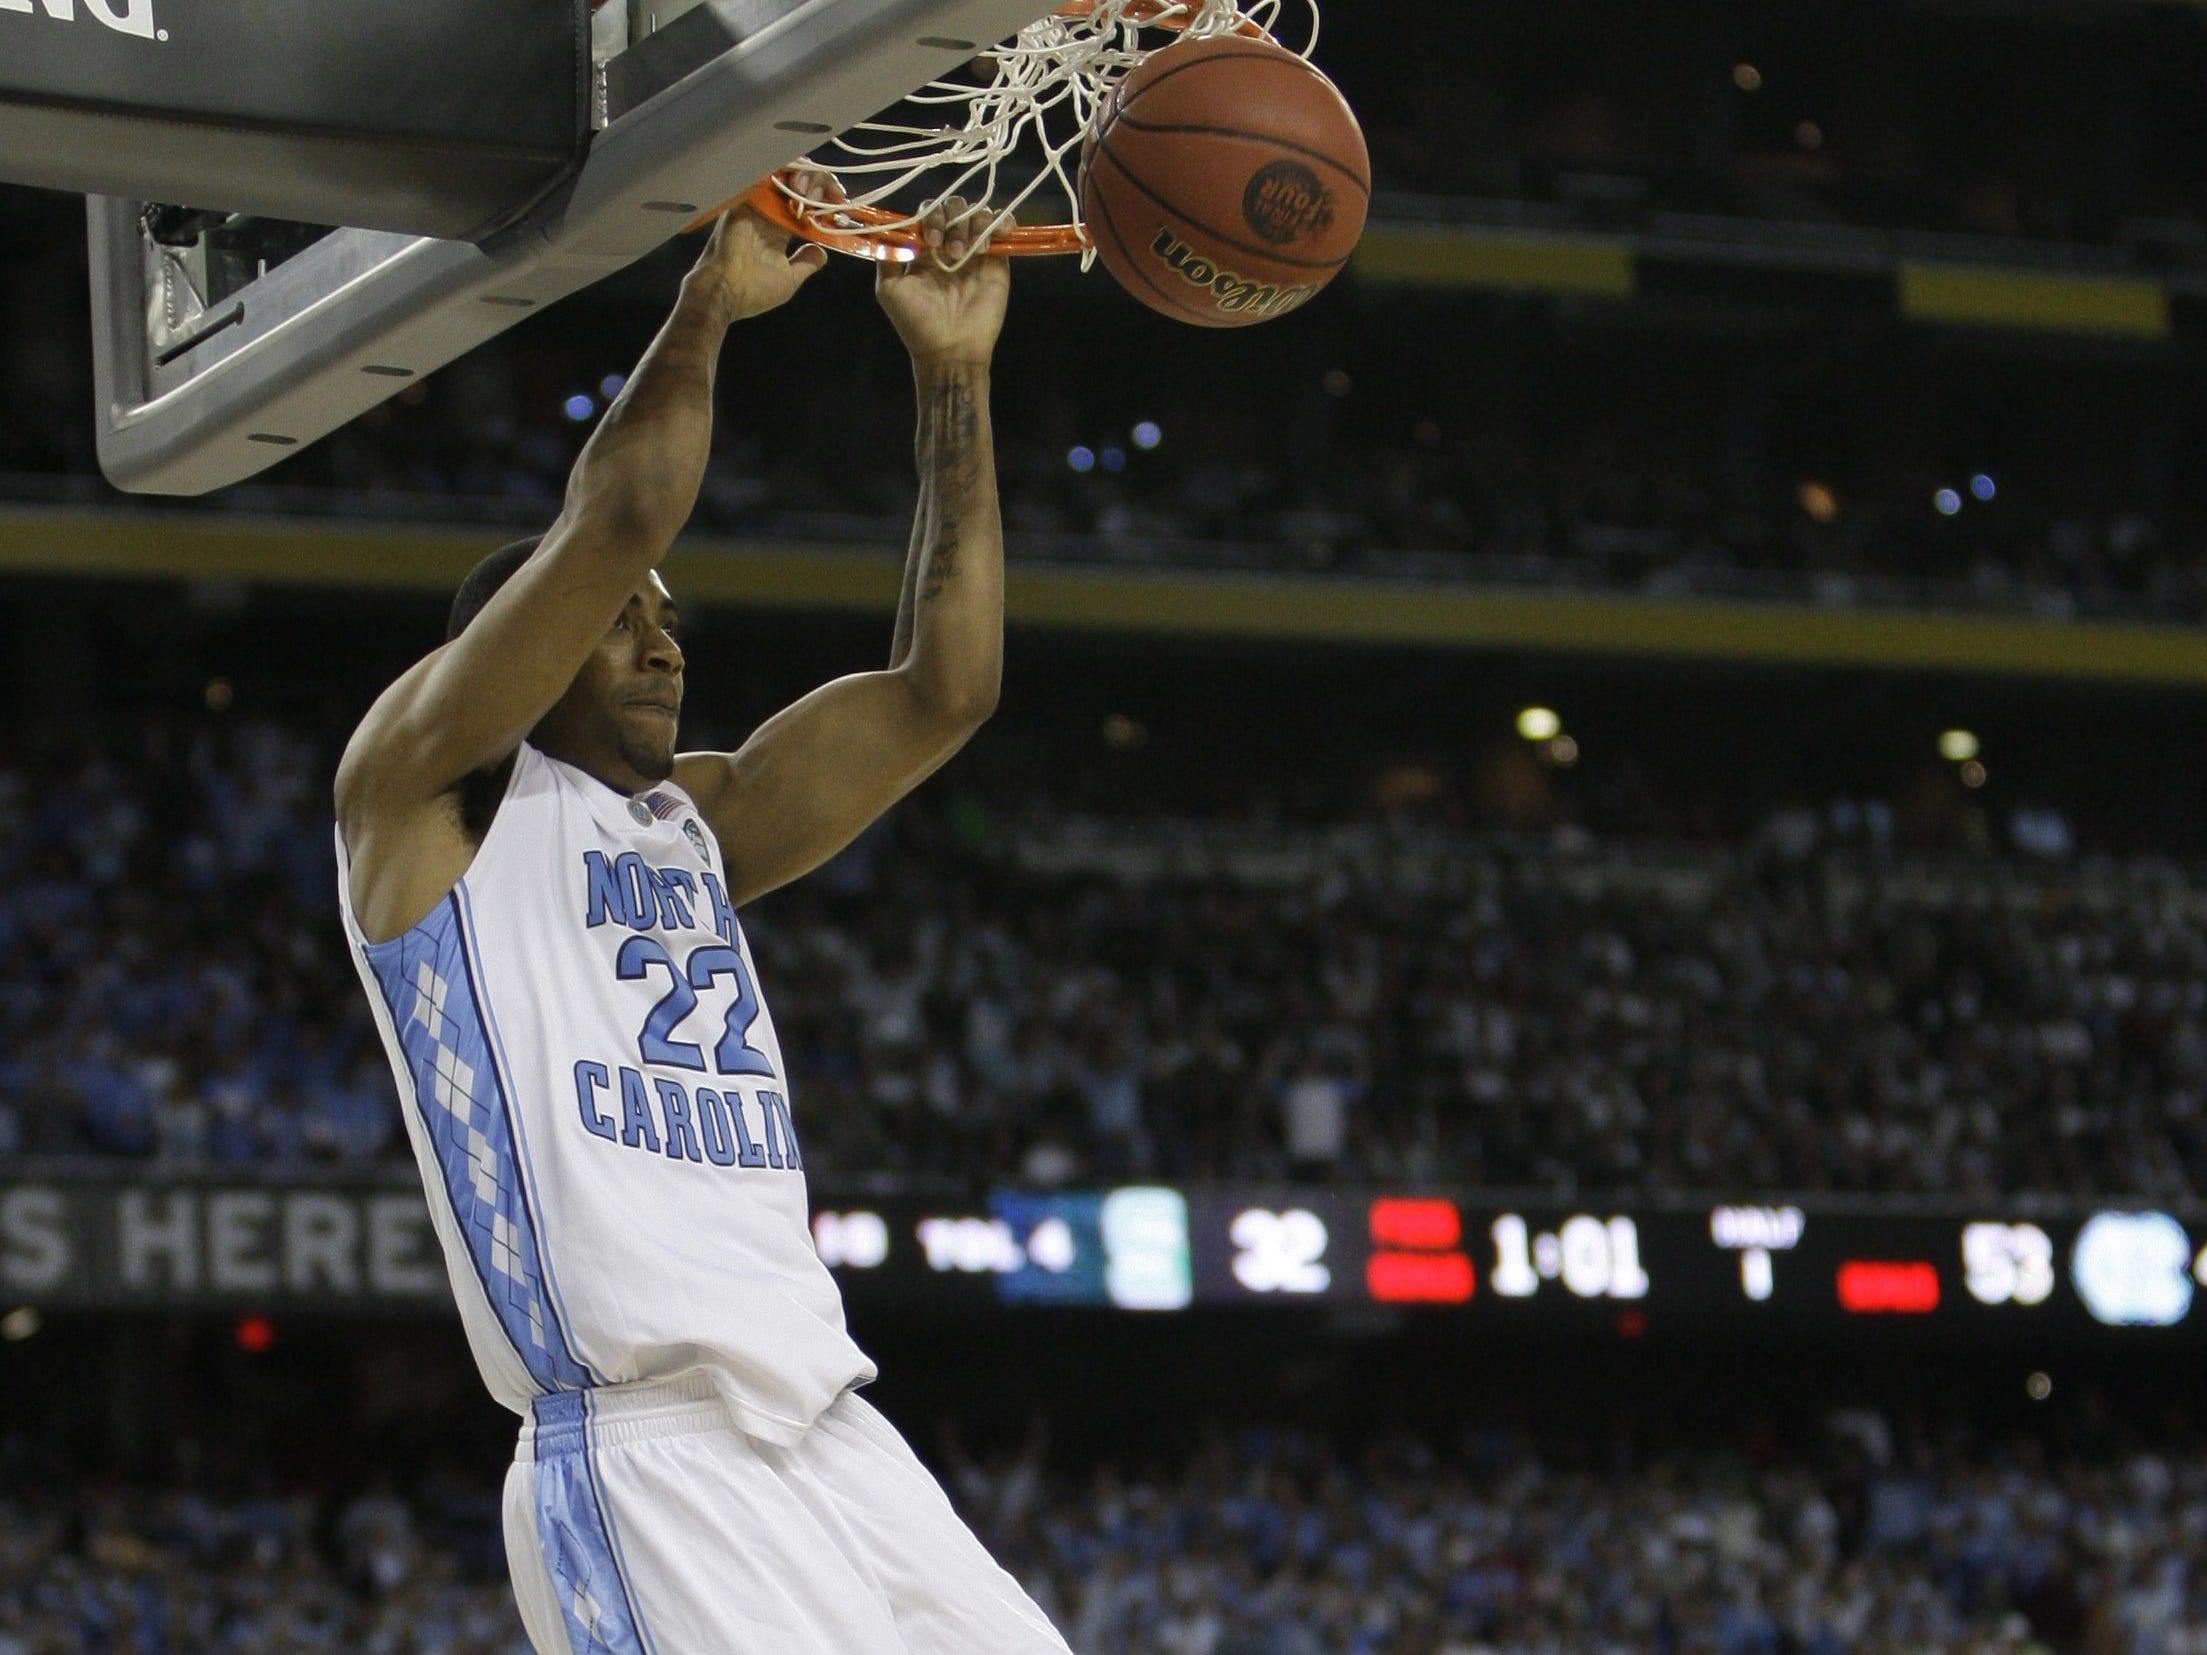 North Carolin's Wayne Ellington dunks against Michigan State during the first half at Ford Field in Detroit, April 6, 2009.